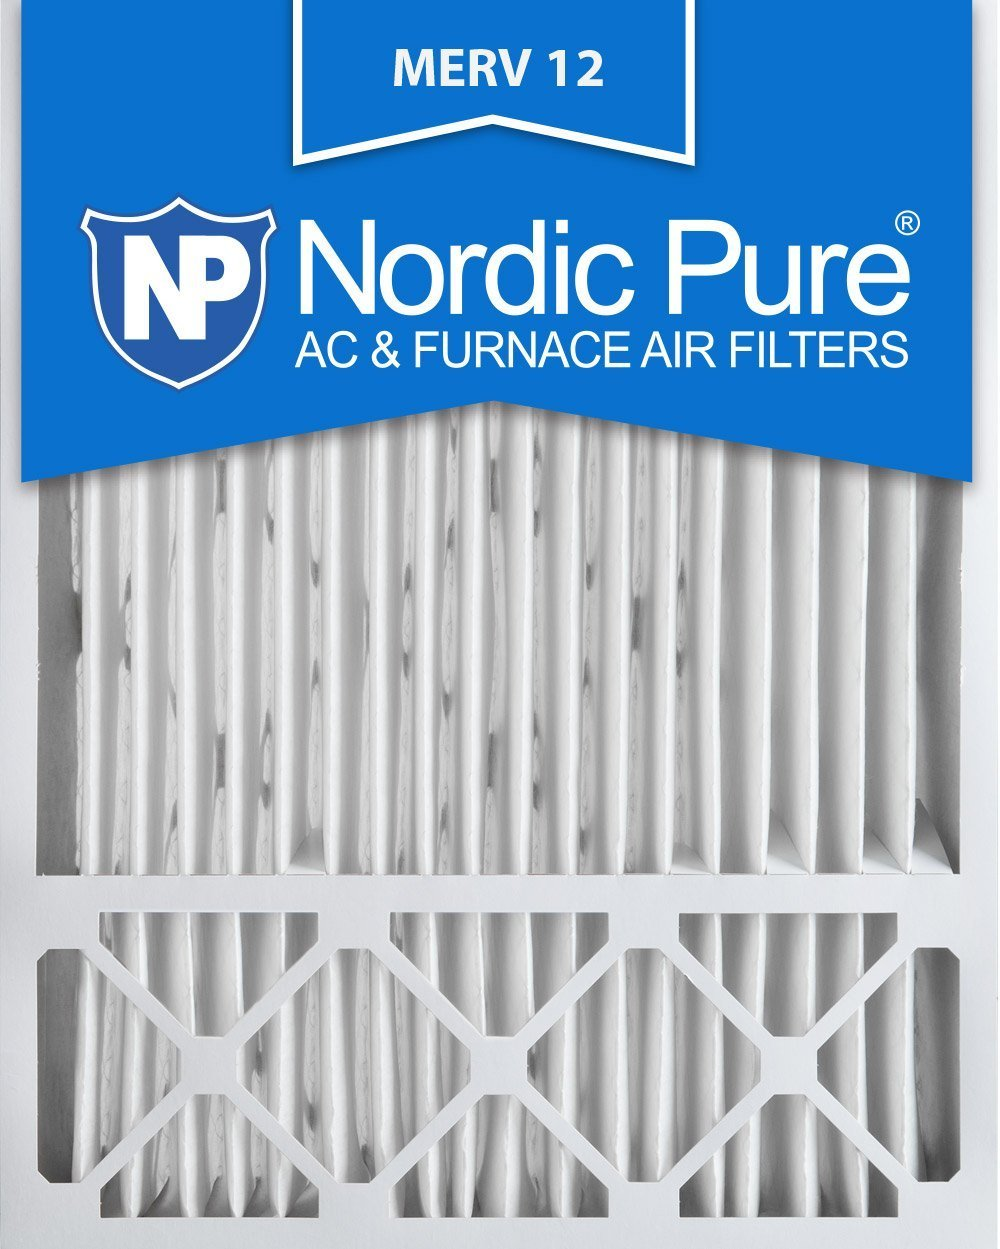 Nordic Pure 20x25x5 Honeywell Replacement AC Furnace Air Filters, MERV 12 (Box of 2 - 2-Pack)